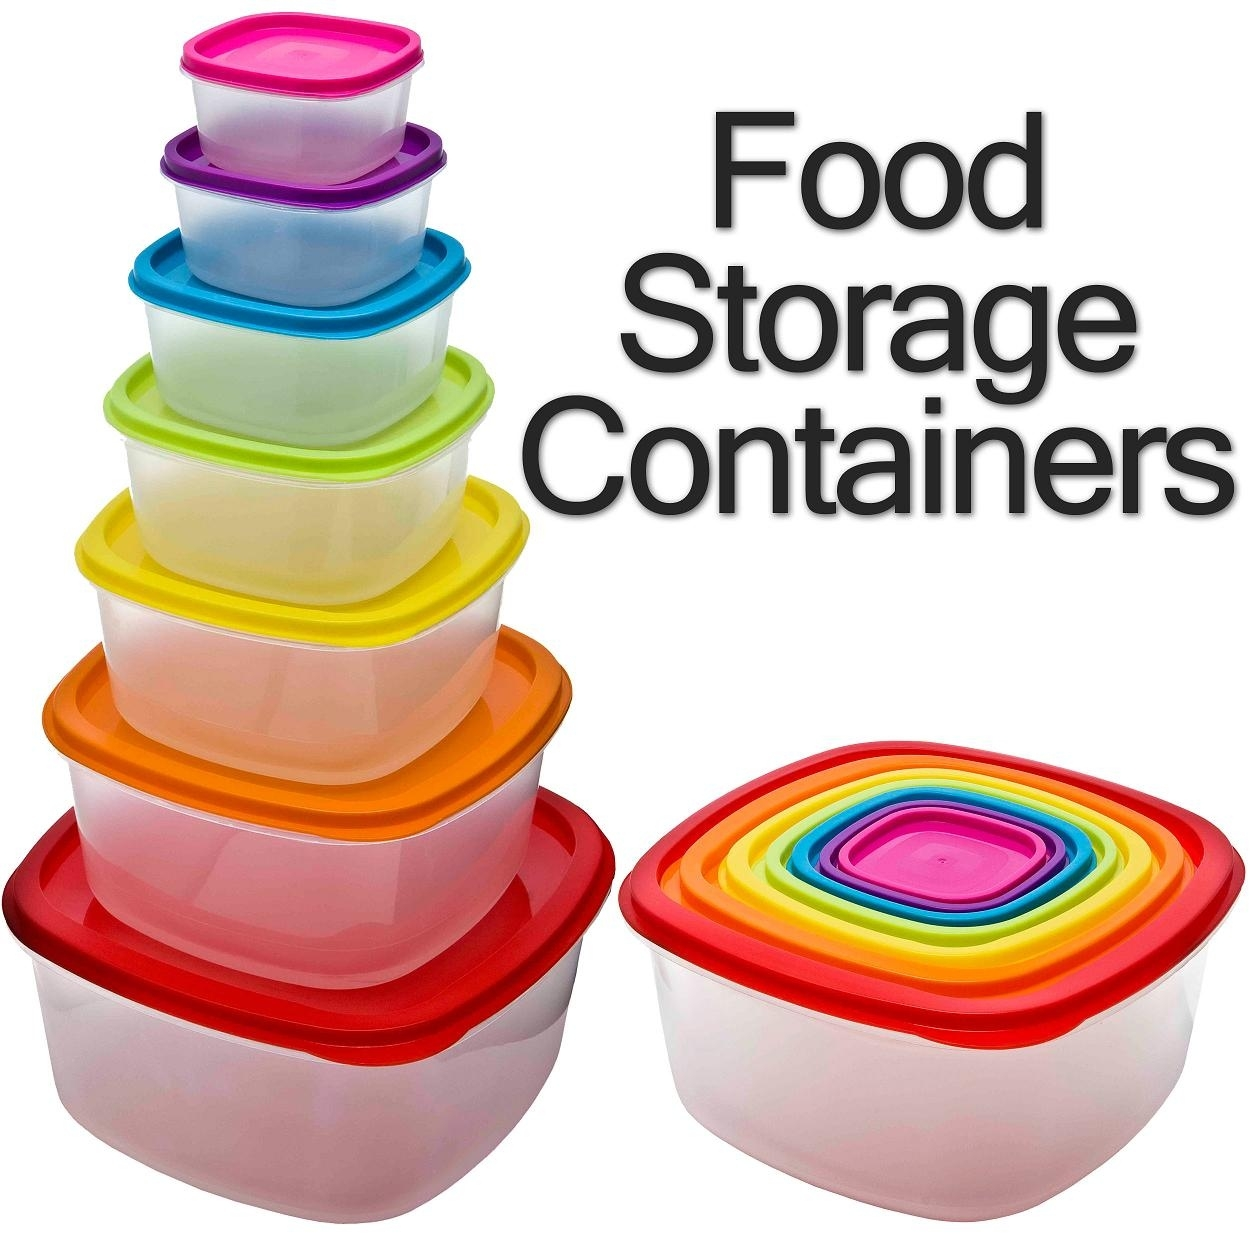 Nested food boxes ideas. Box clipart storage bin